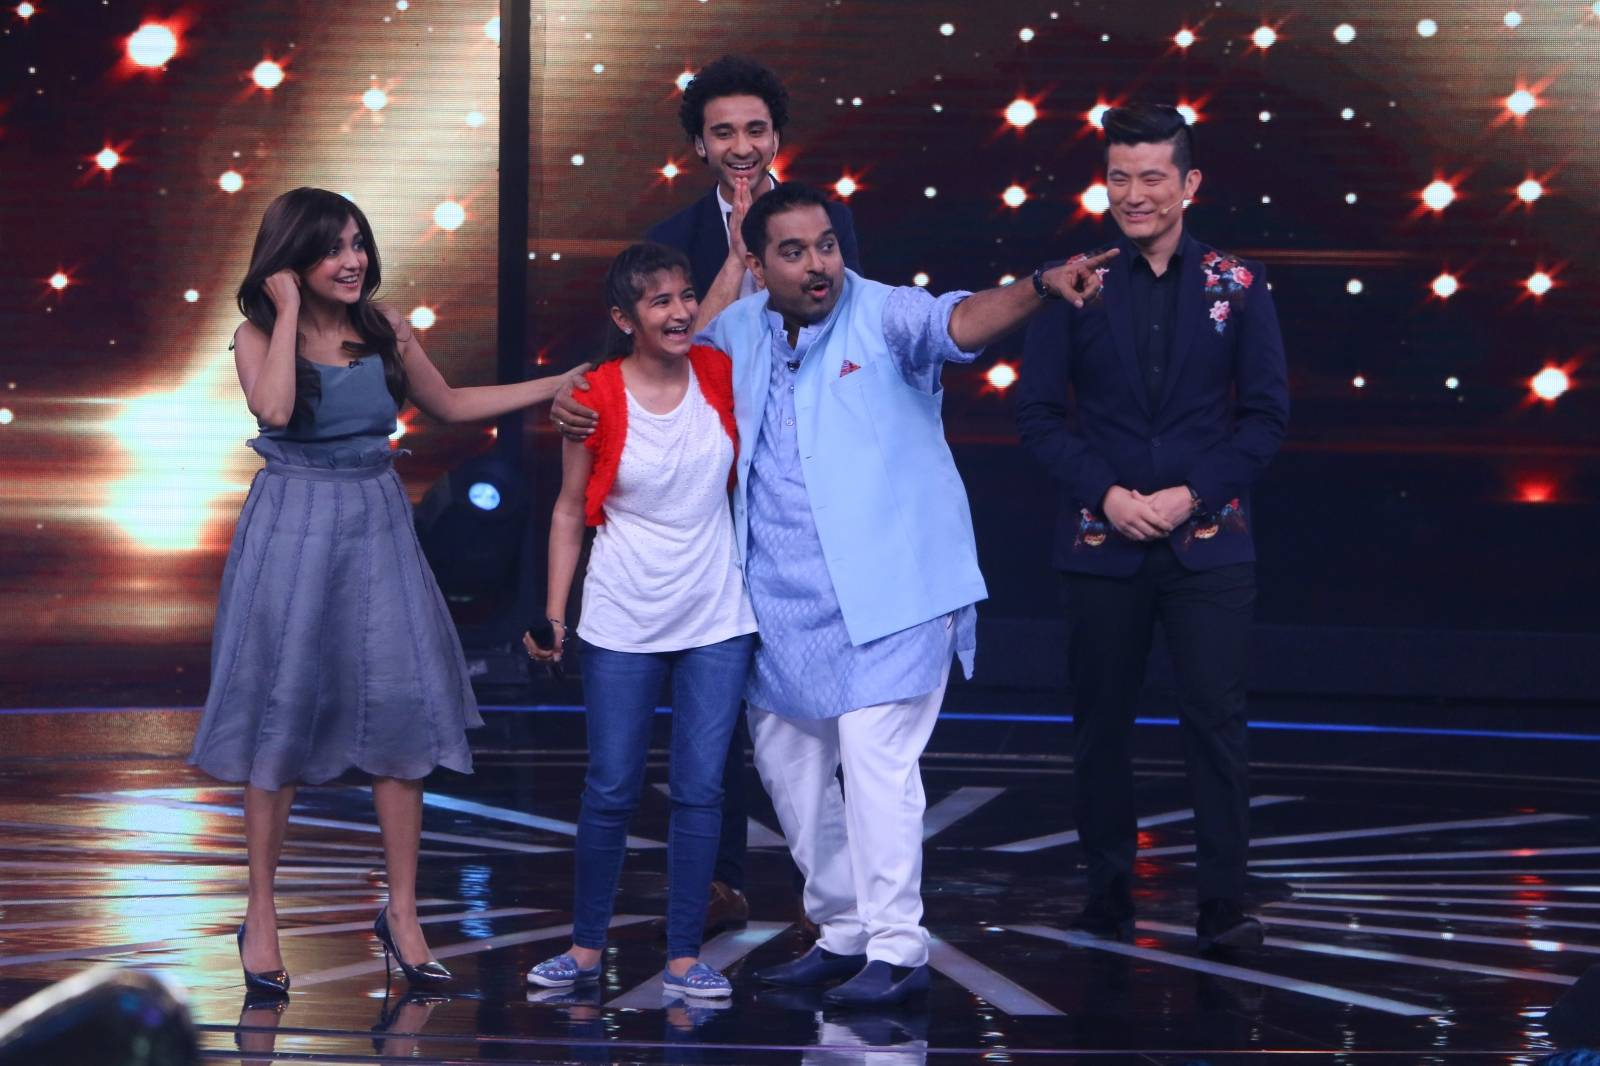 Best Moments From The Fourth Episode of 'Rising Star'